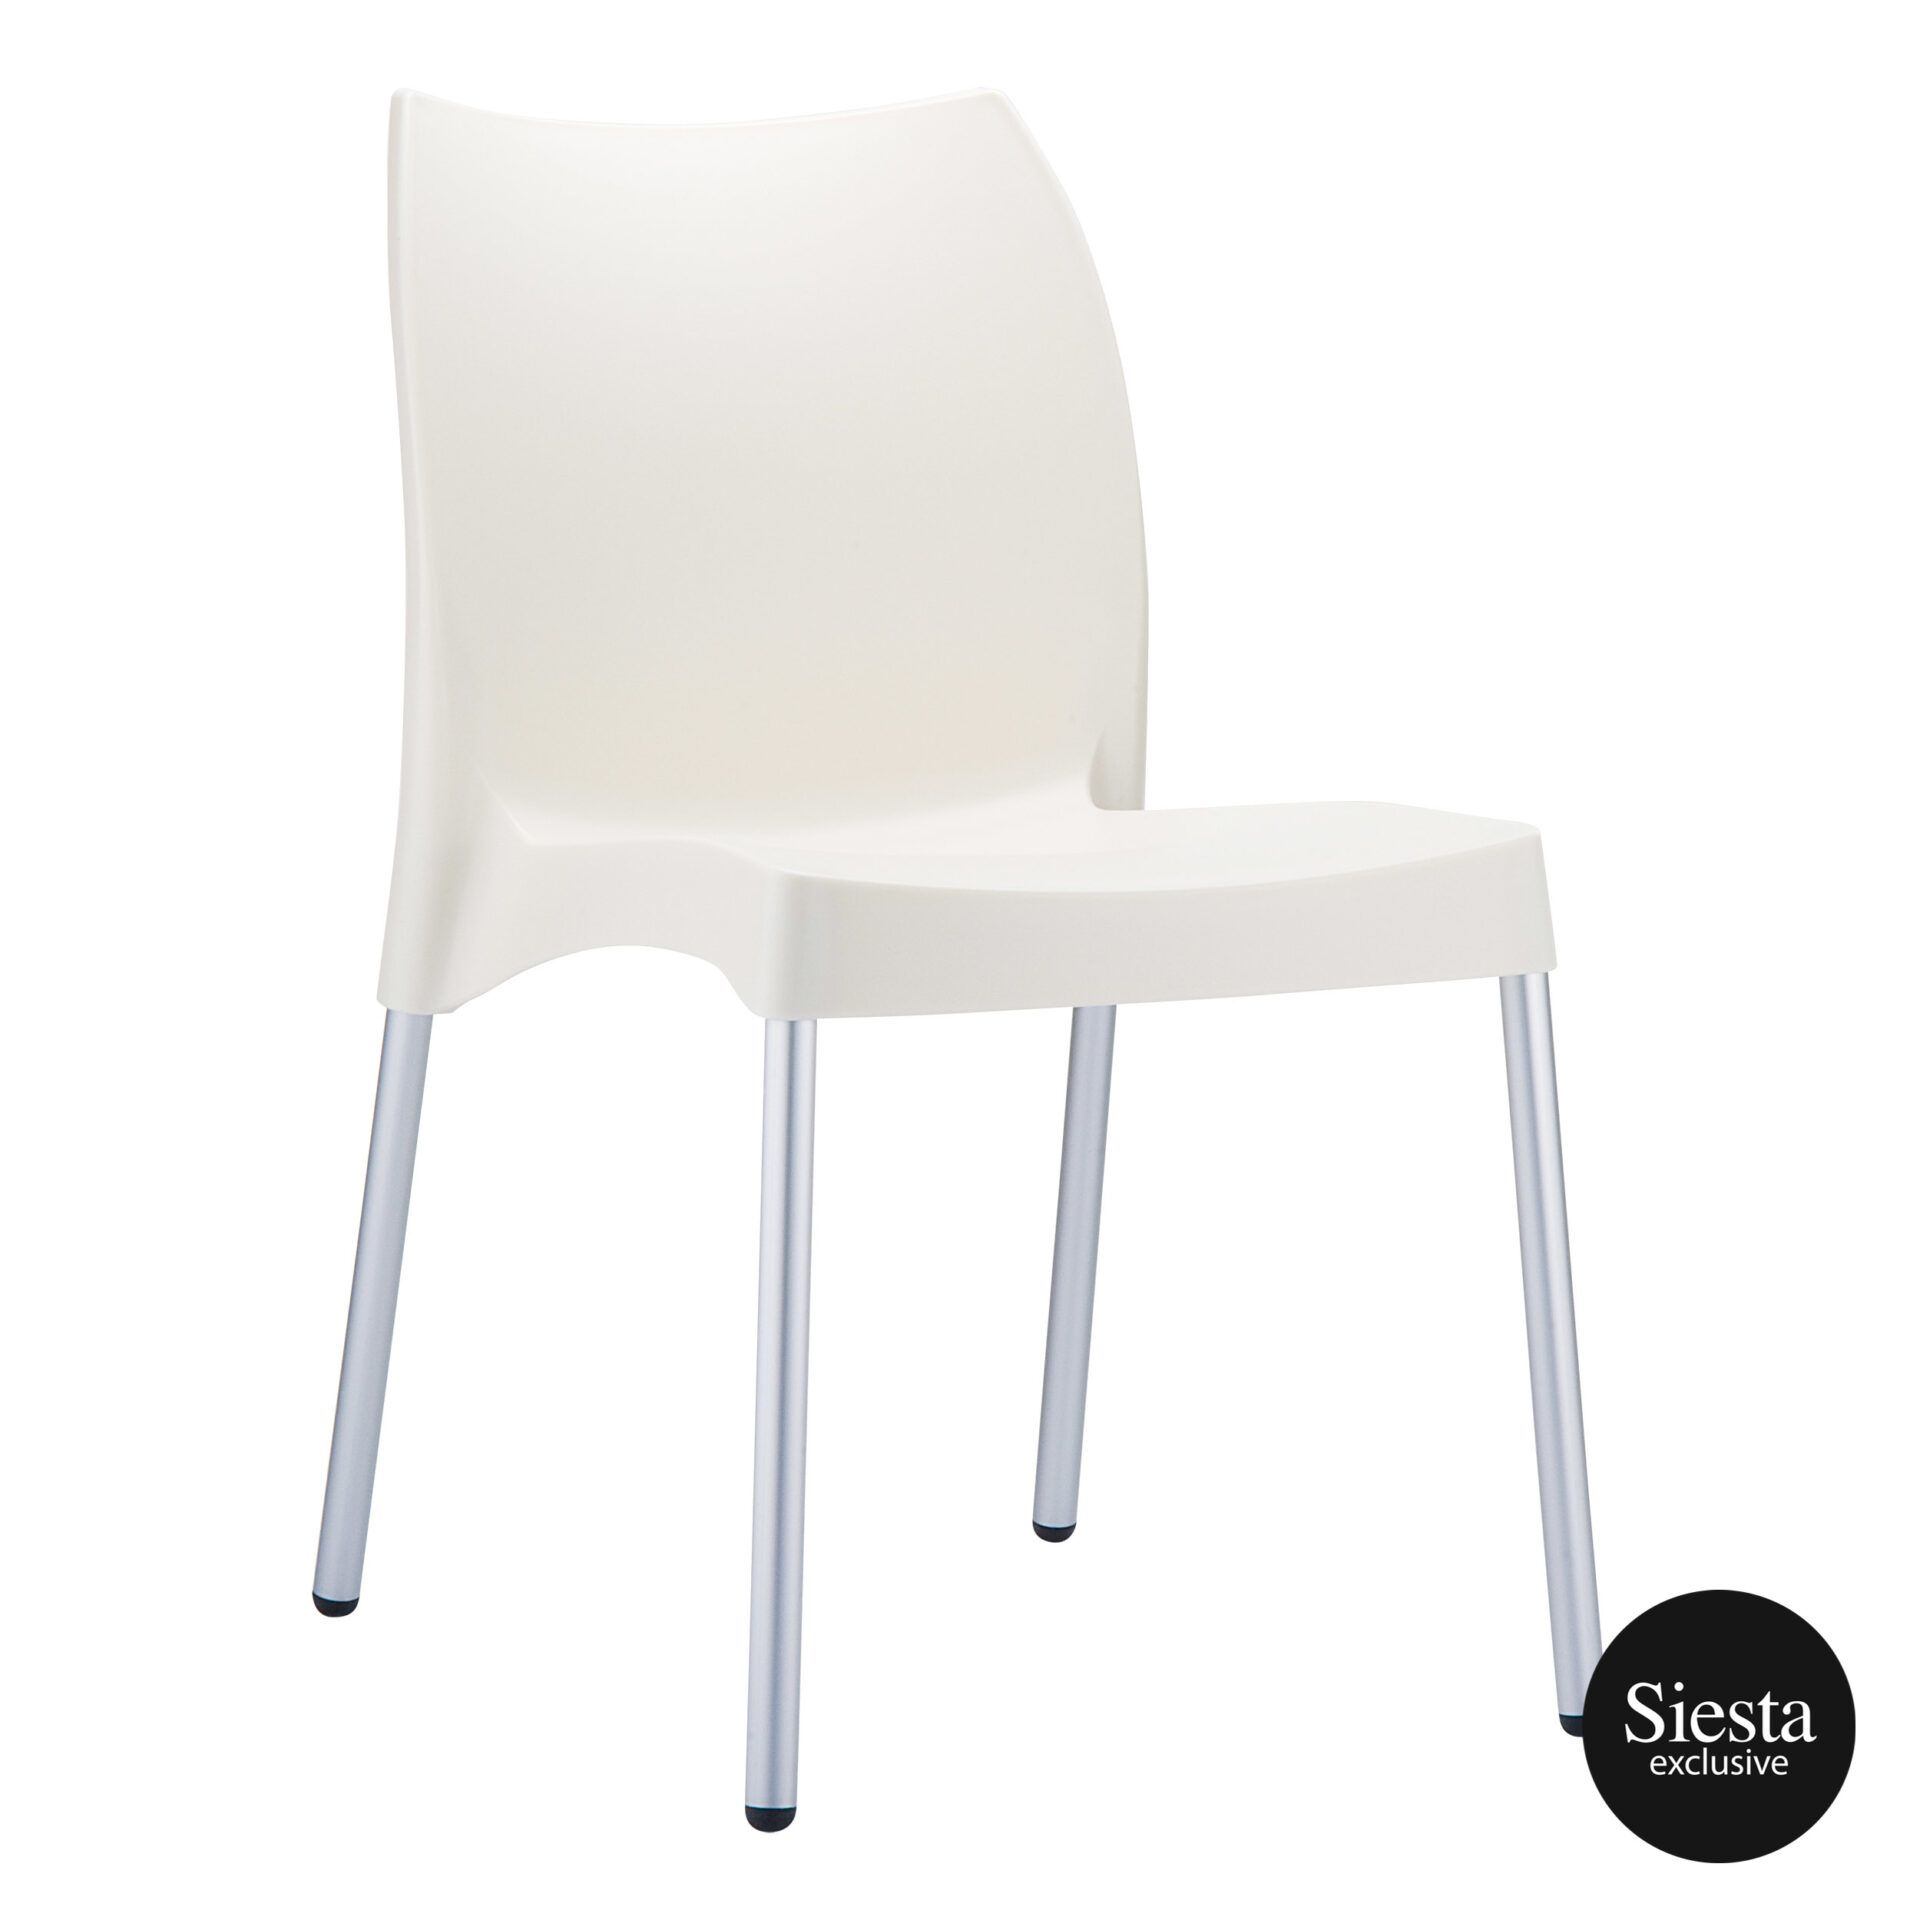 commercial outdoor hospitality seating vita chair beige front side 1